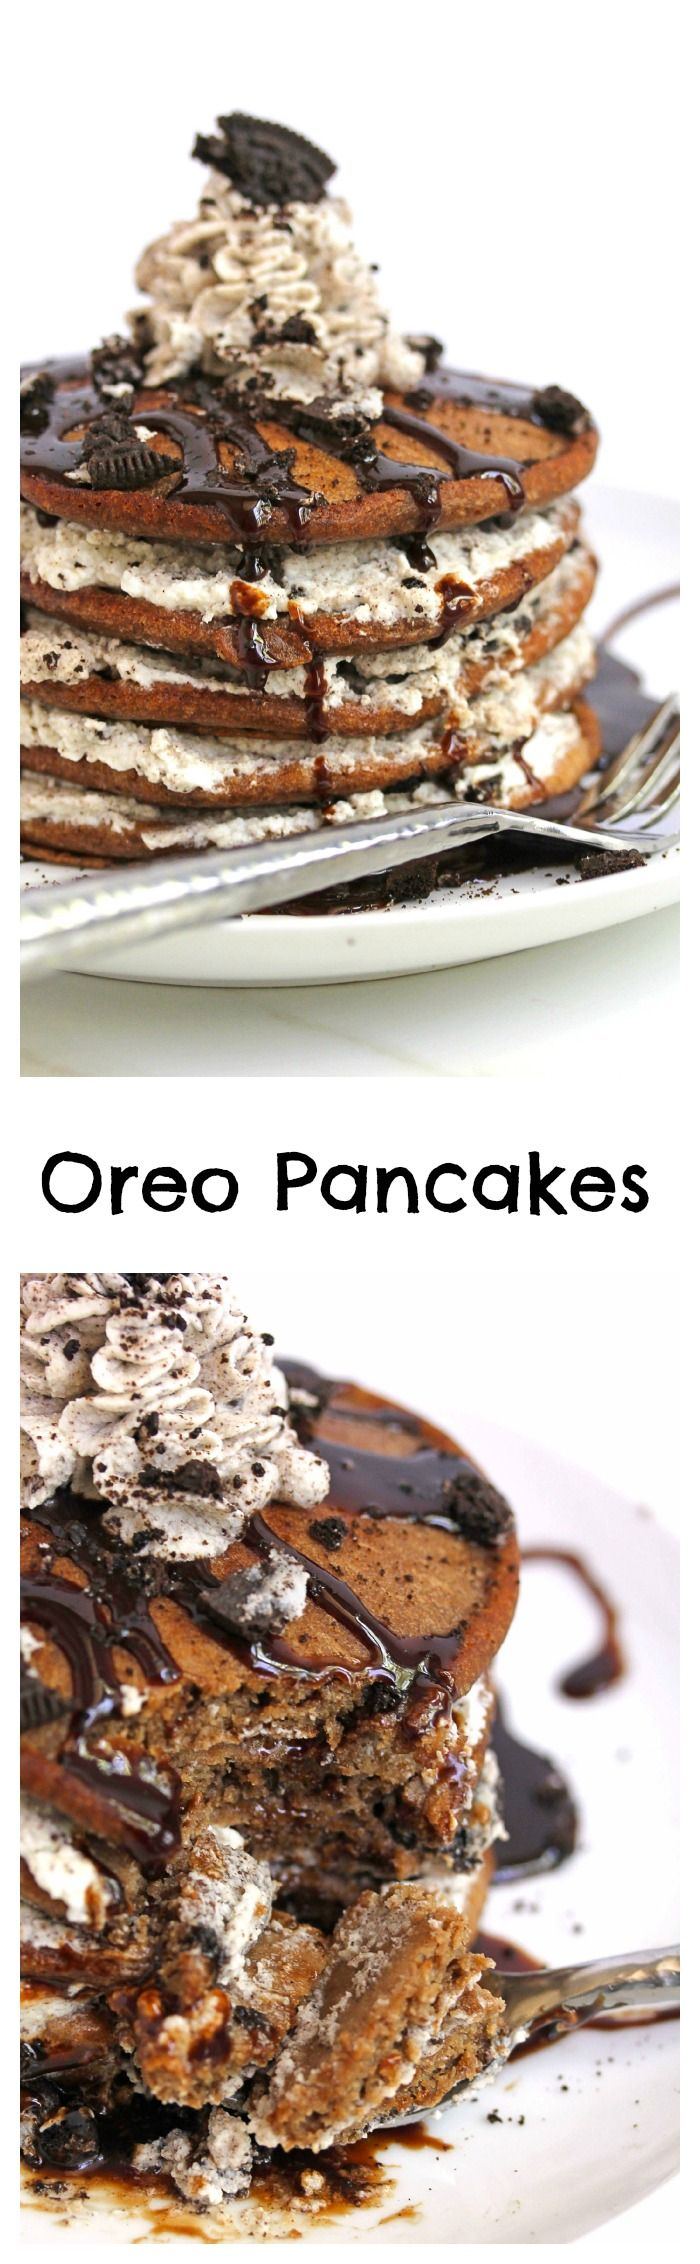 Oreo Pancakes, perfect for Valentine's Day morning | Grandbaby Cakes